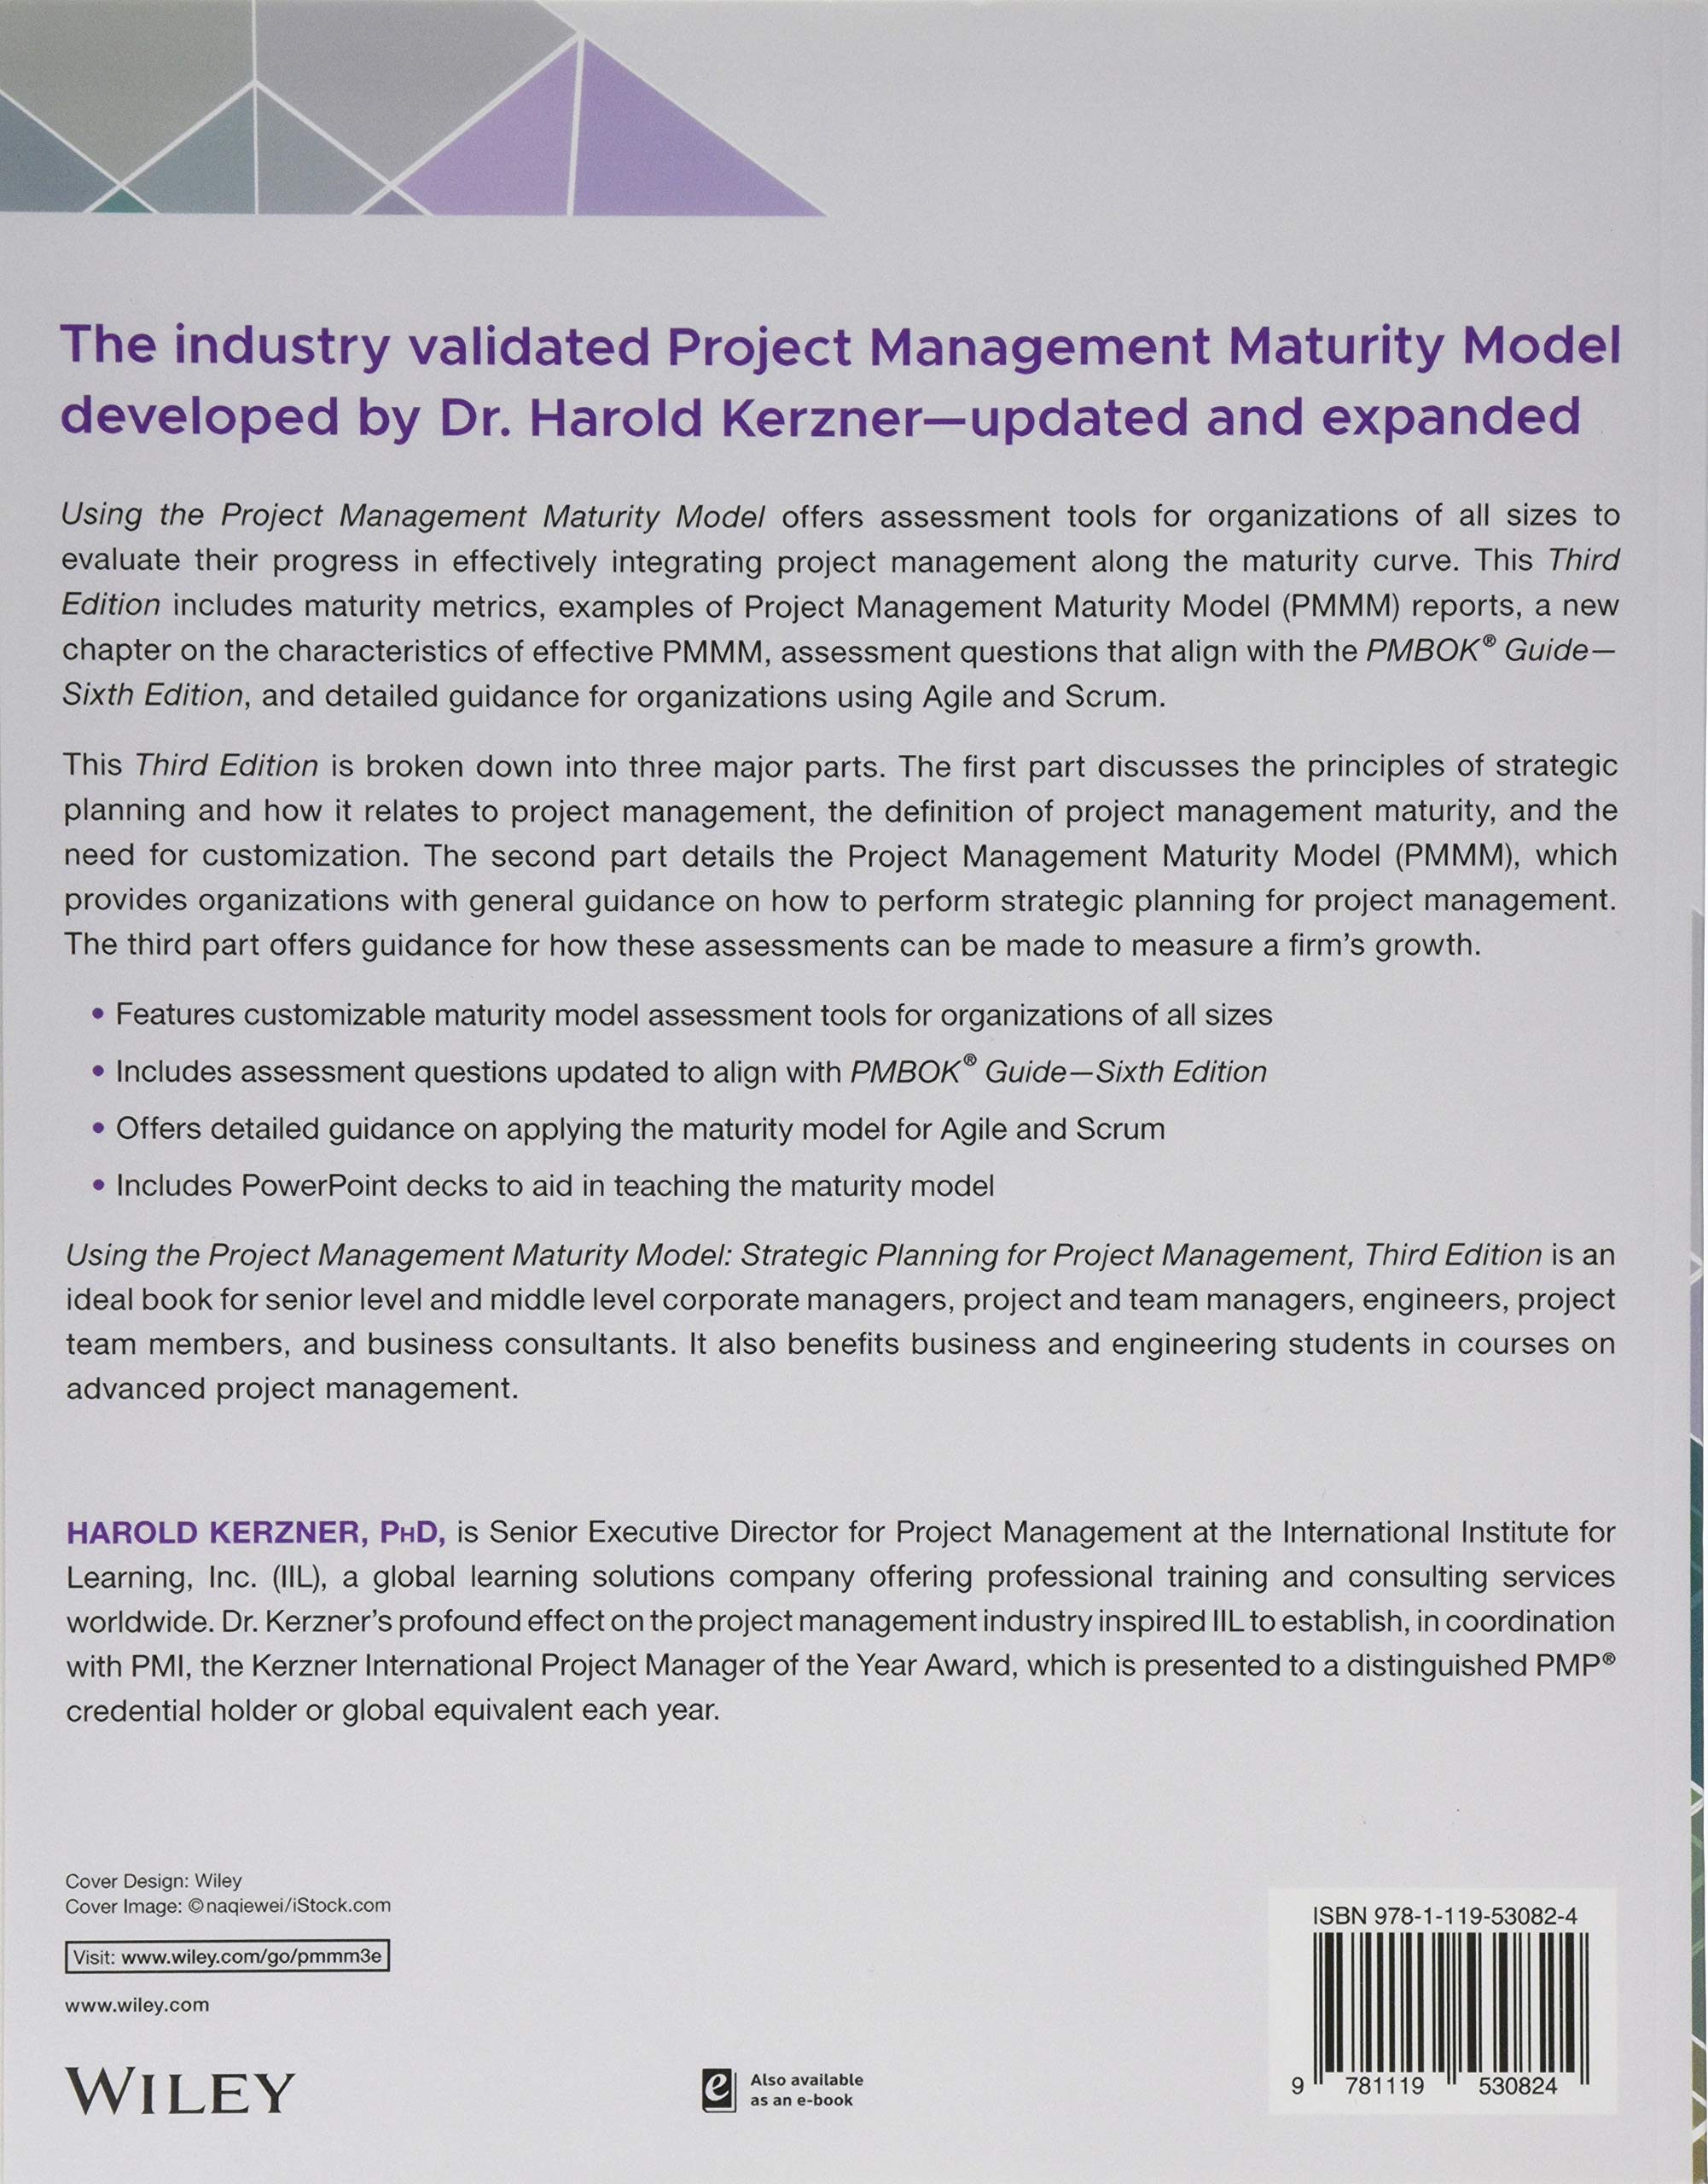 Using the Project Management Maturity Model: Strategic Planning for